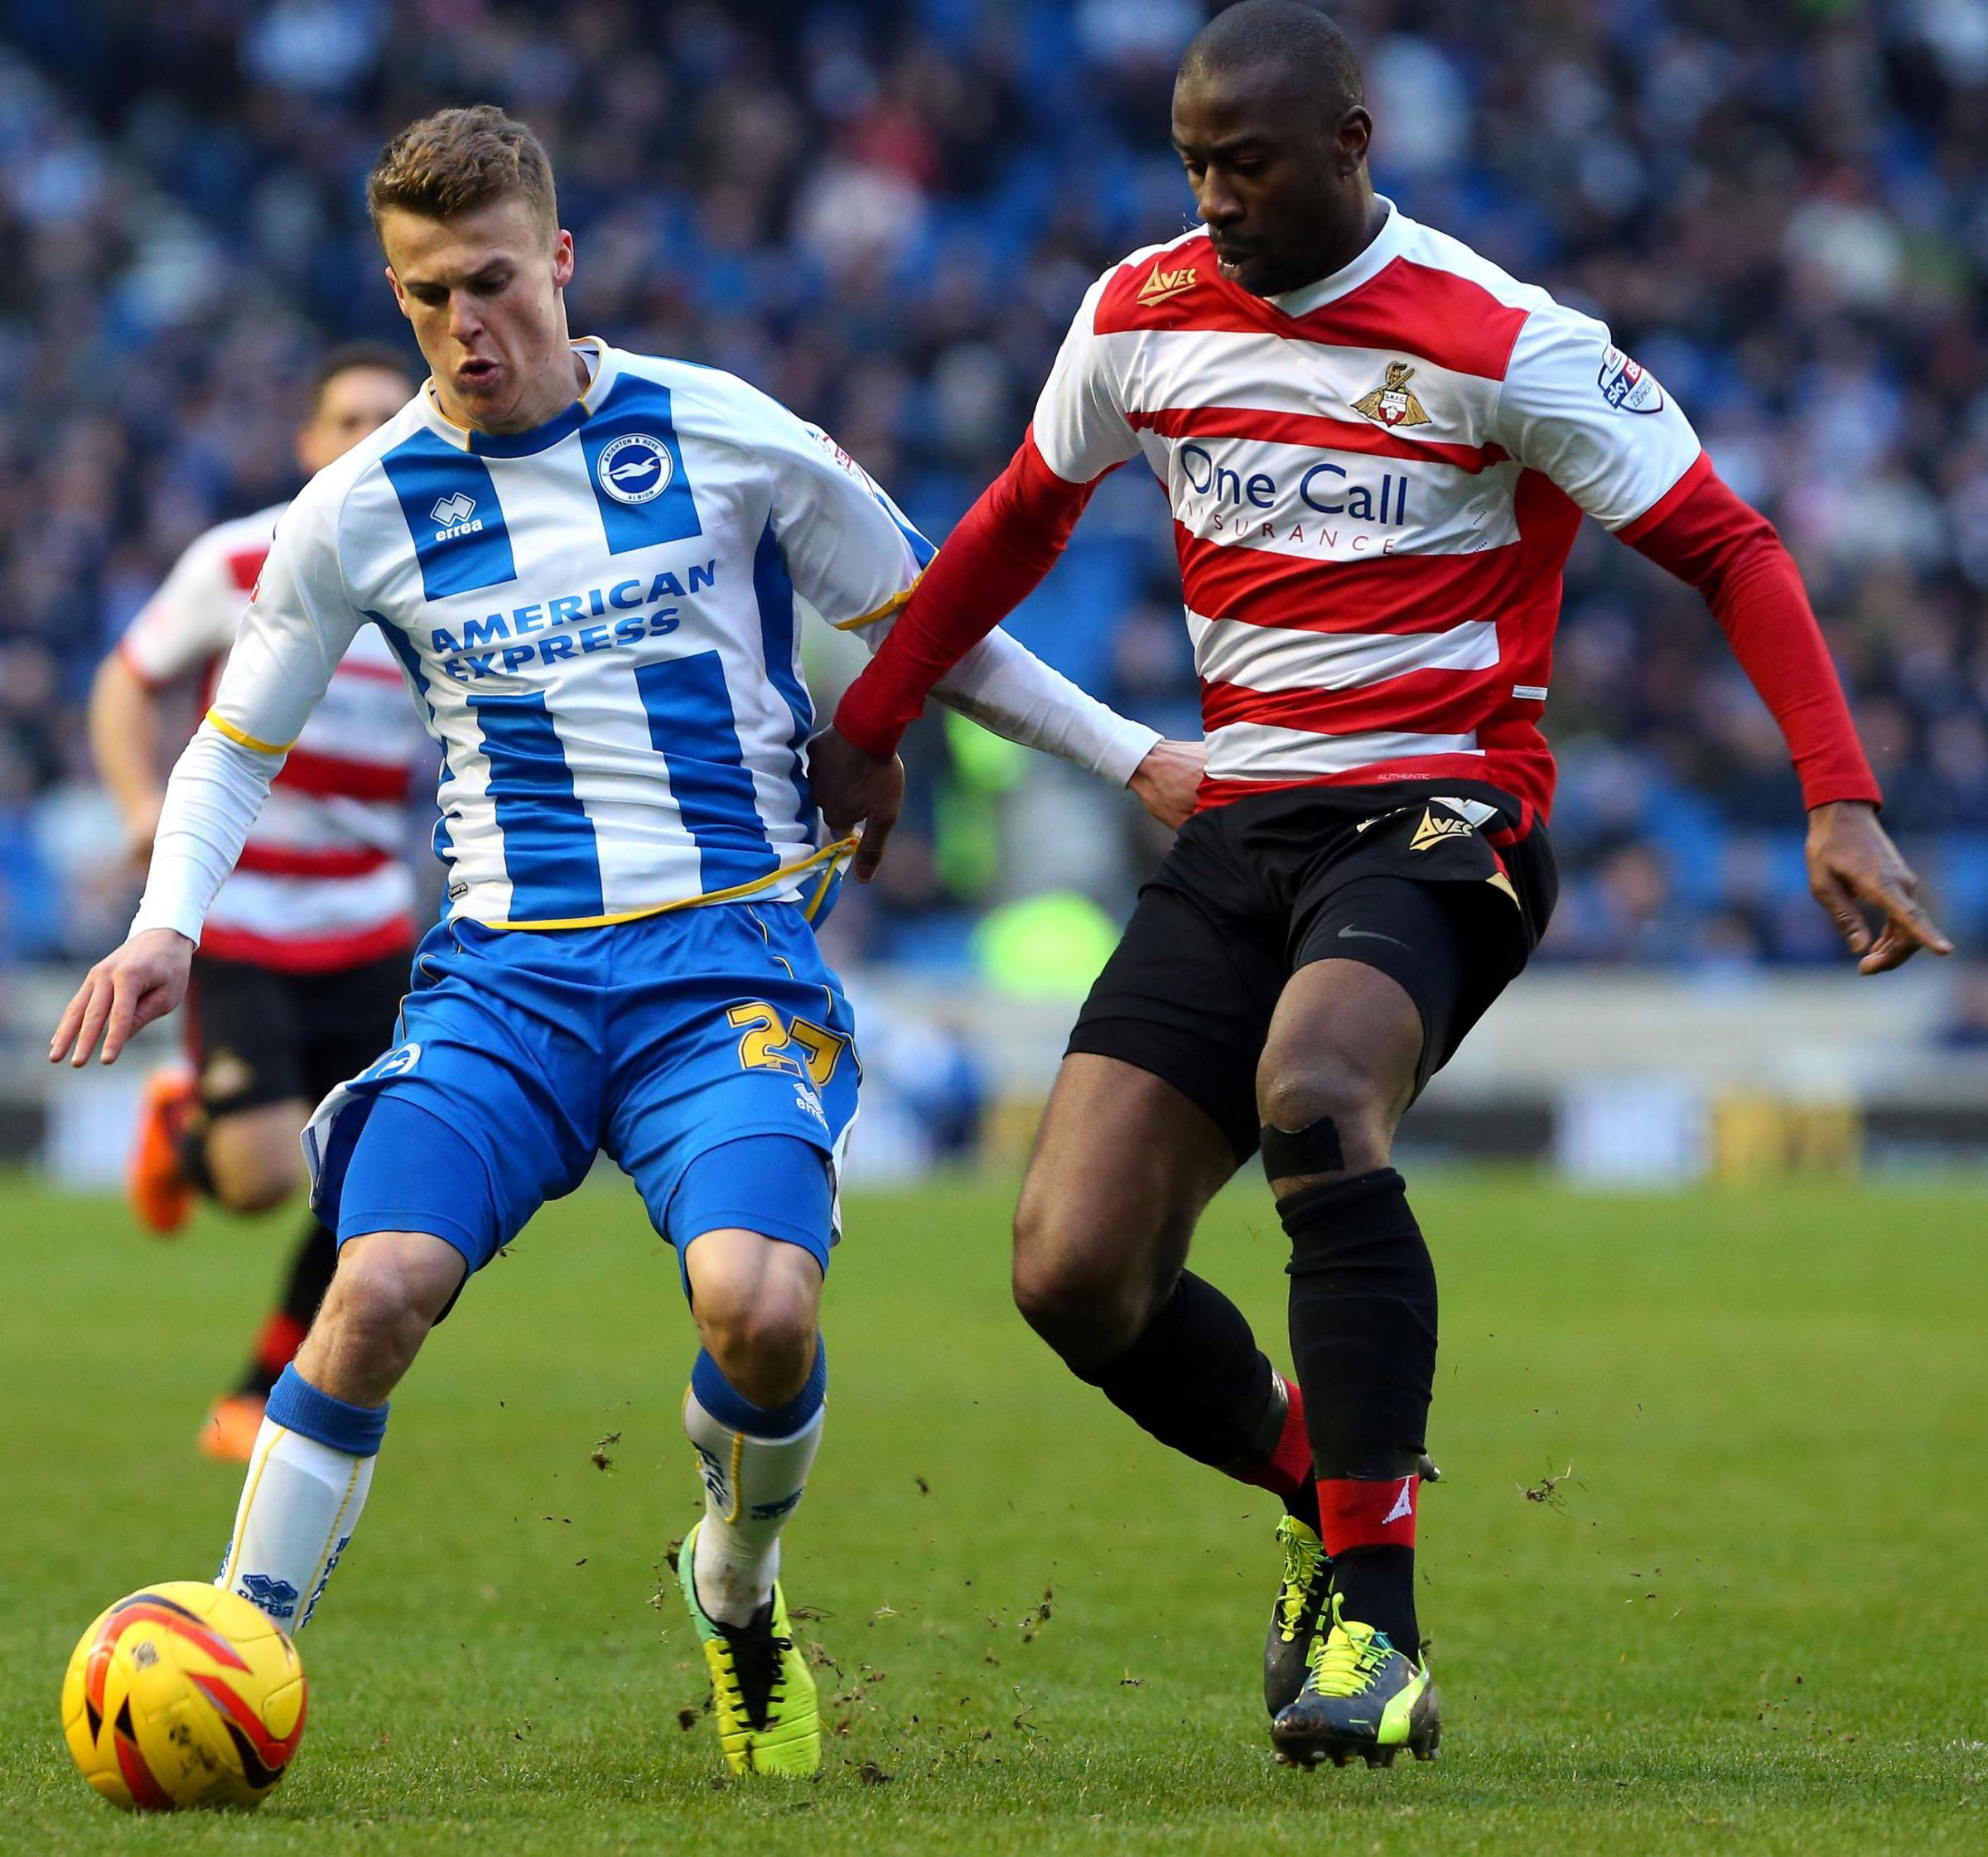 Solly March has been ruled out